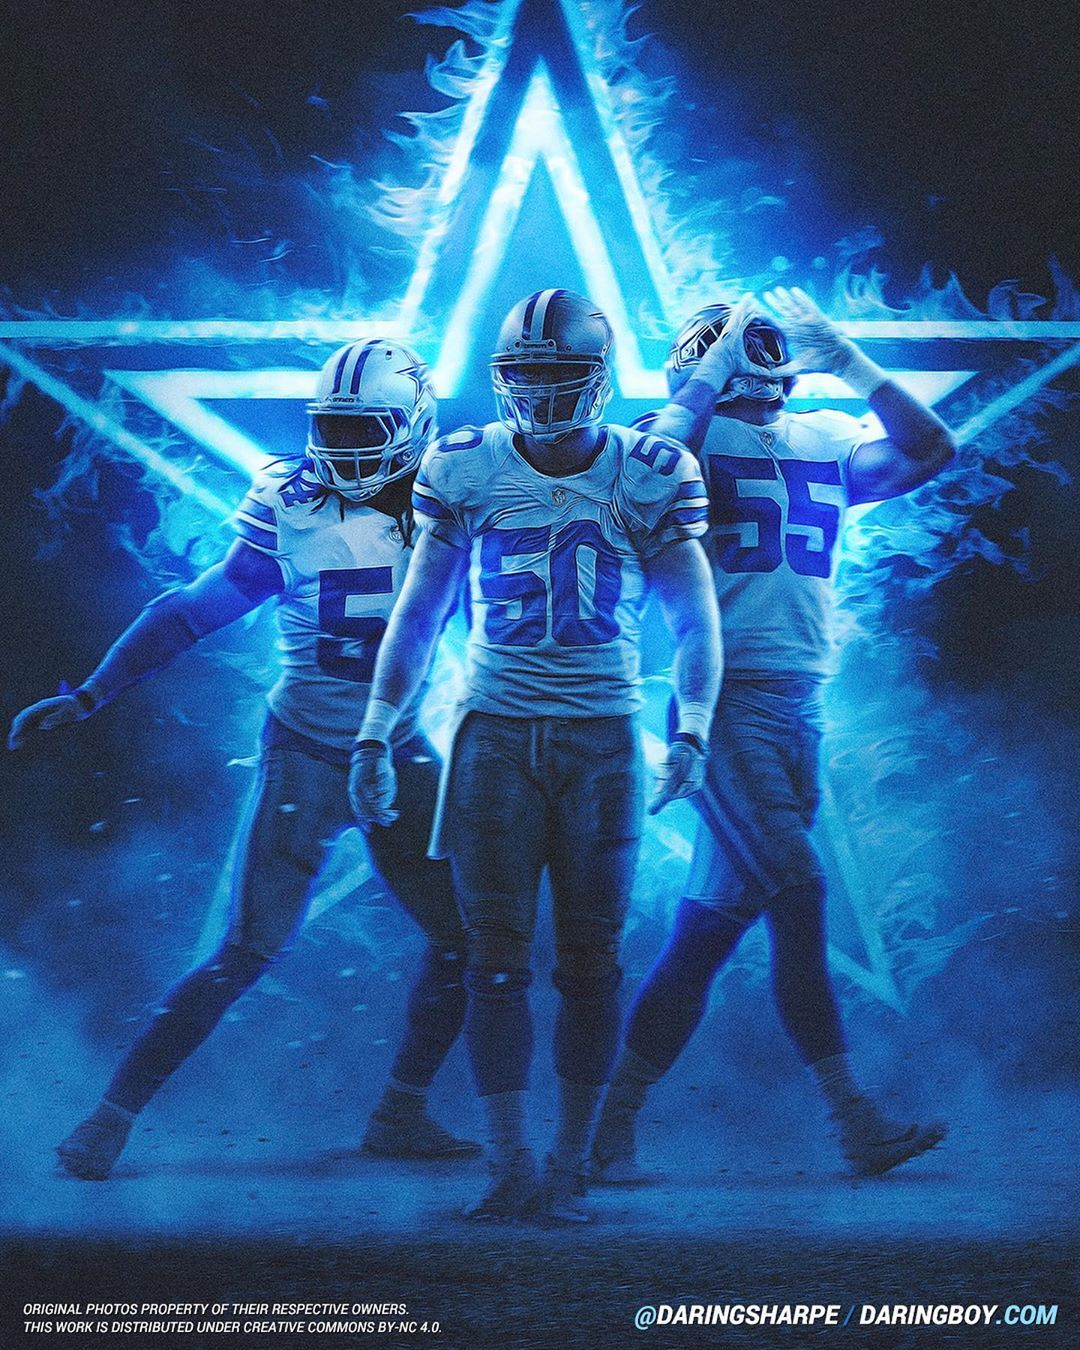 Dallas Cowboys On Instagram Go Follow Daringsharpe Right Now For More Cowboy Dallas Cowboys Wallpaper Dallas Cowboys Football Team Dallas Cowboys Images